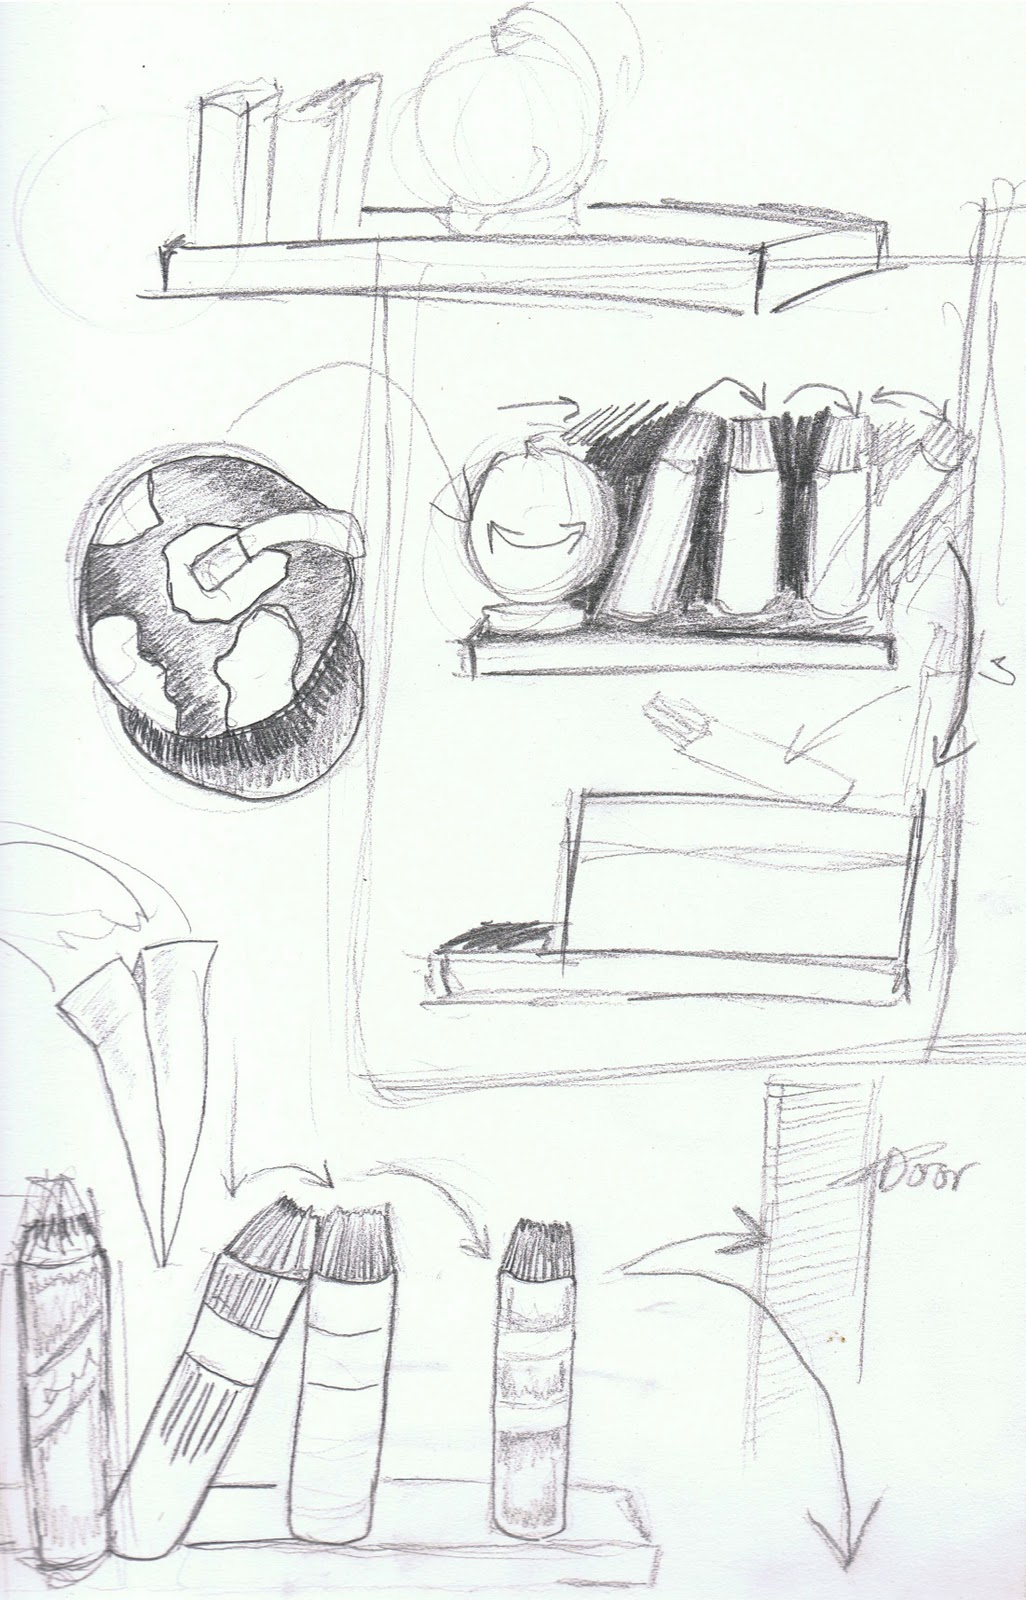 Animating The Future.: Annotated Pieces from my storyboard